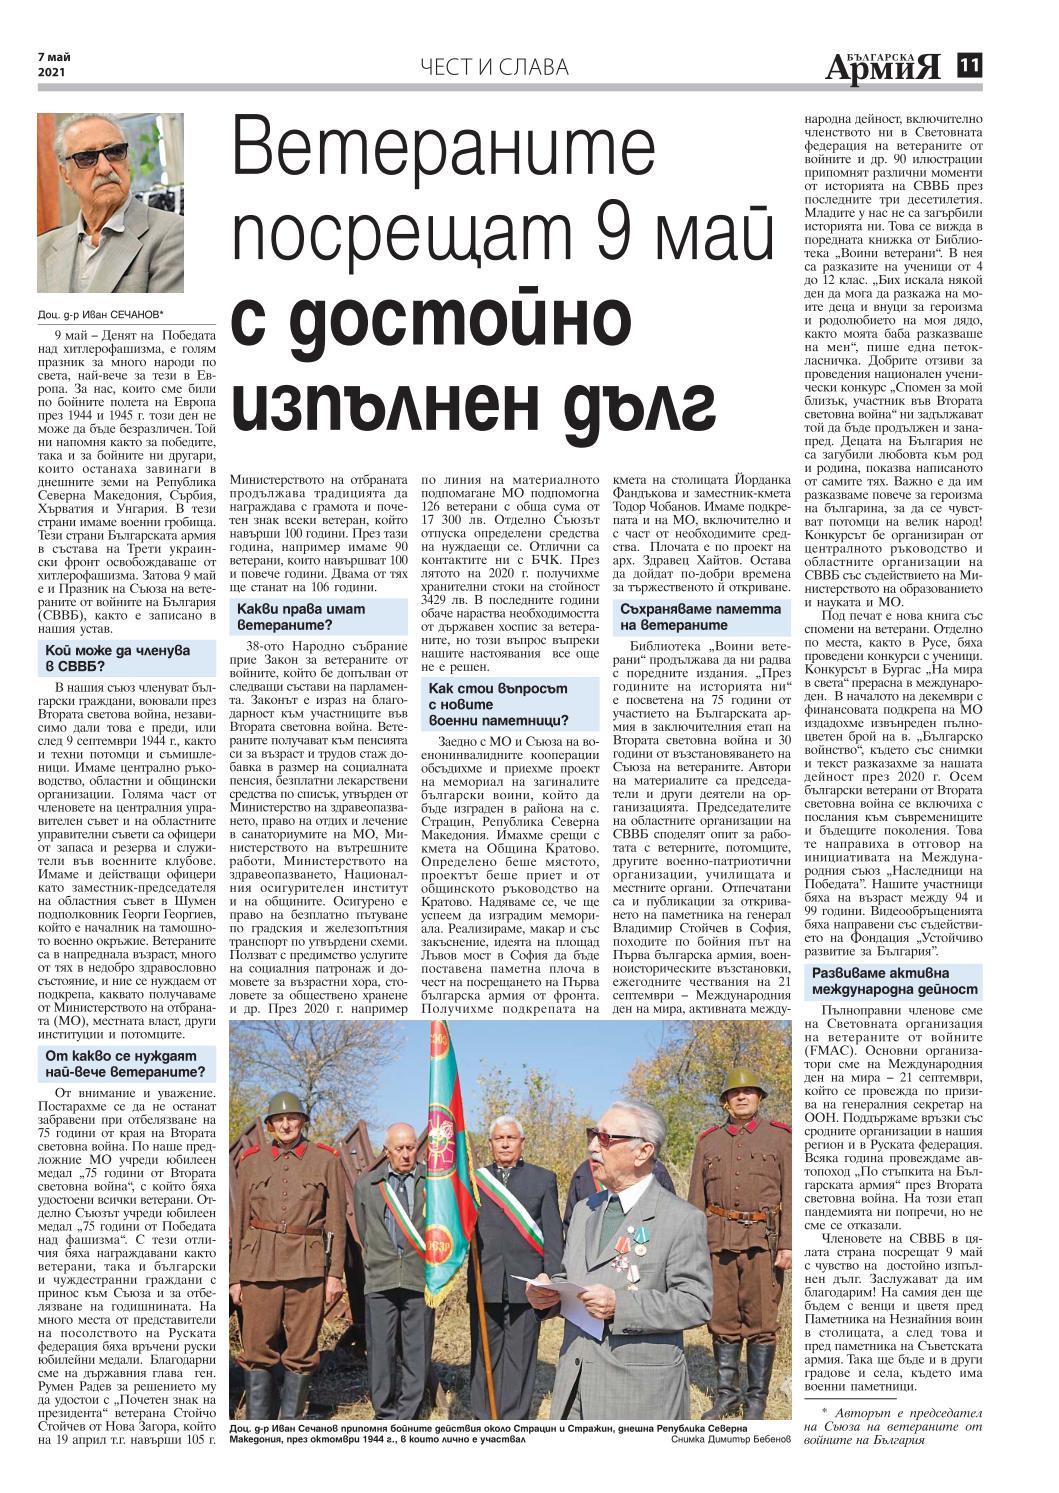 https://armymedia.bg/wp-content/uploads/2021/05/11.page1_.jpg